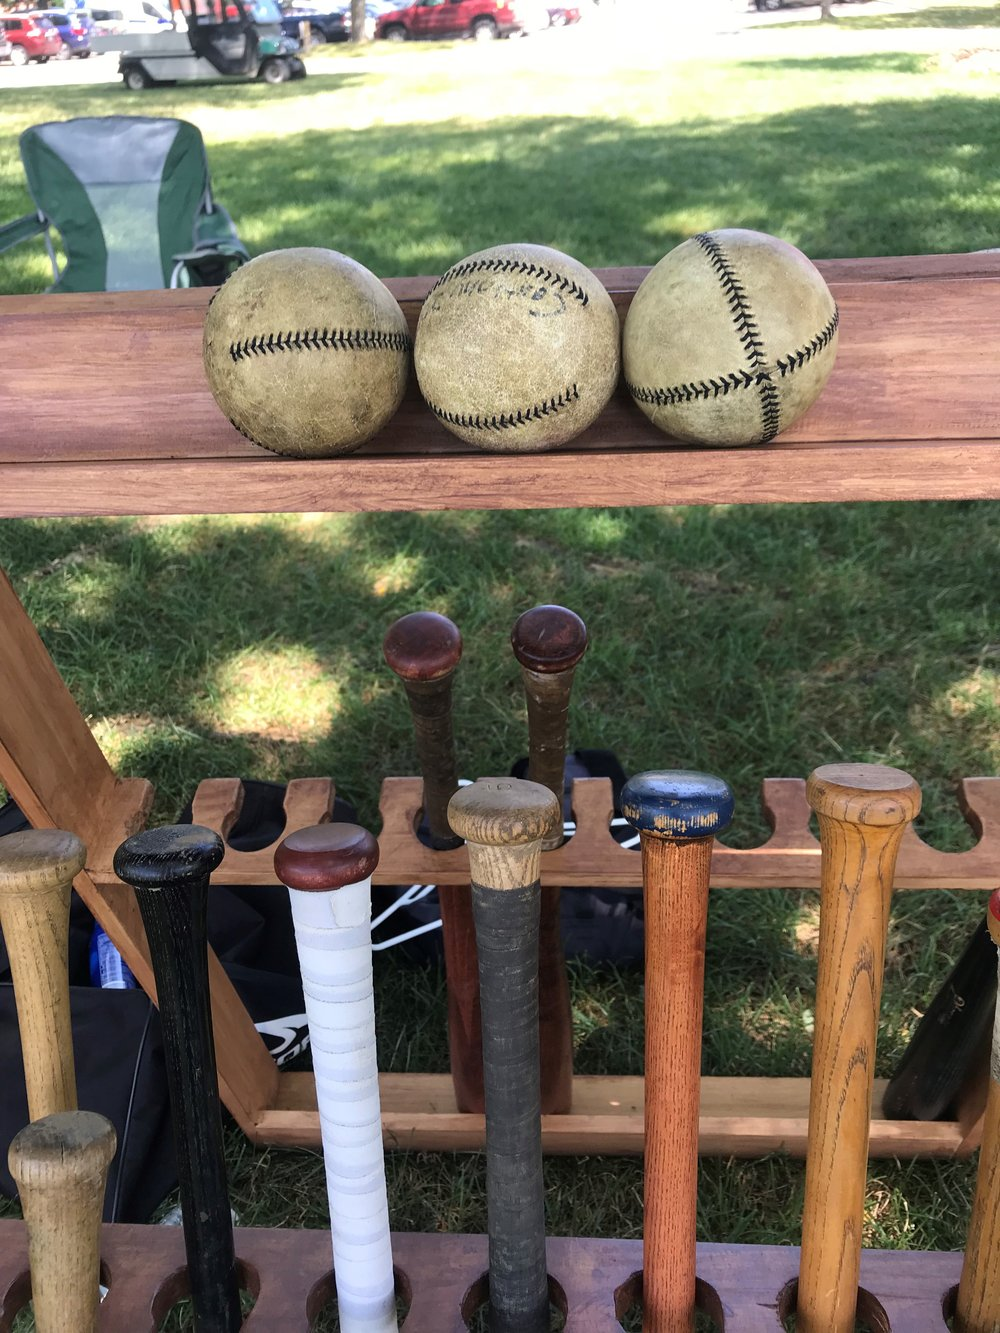 Vintage bats and balls stand at the ready for the 5th Annual Red Oak Vintage Baseball Festival at Cantigny